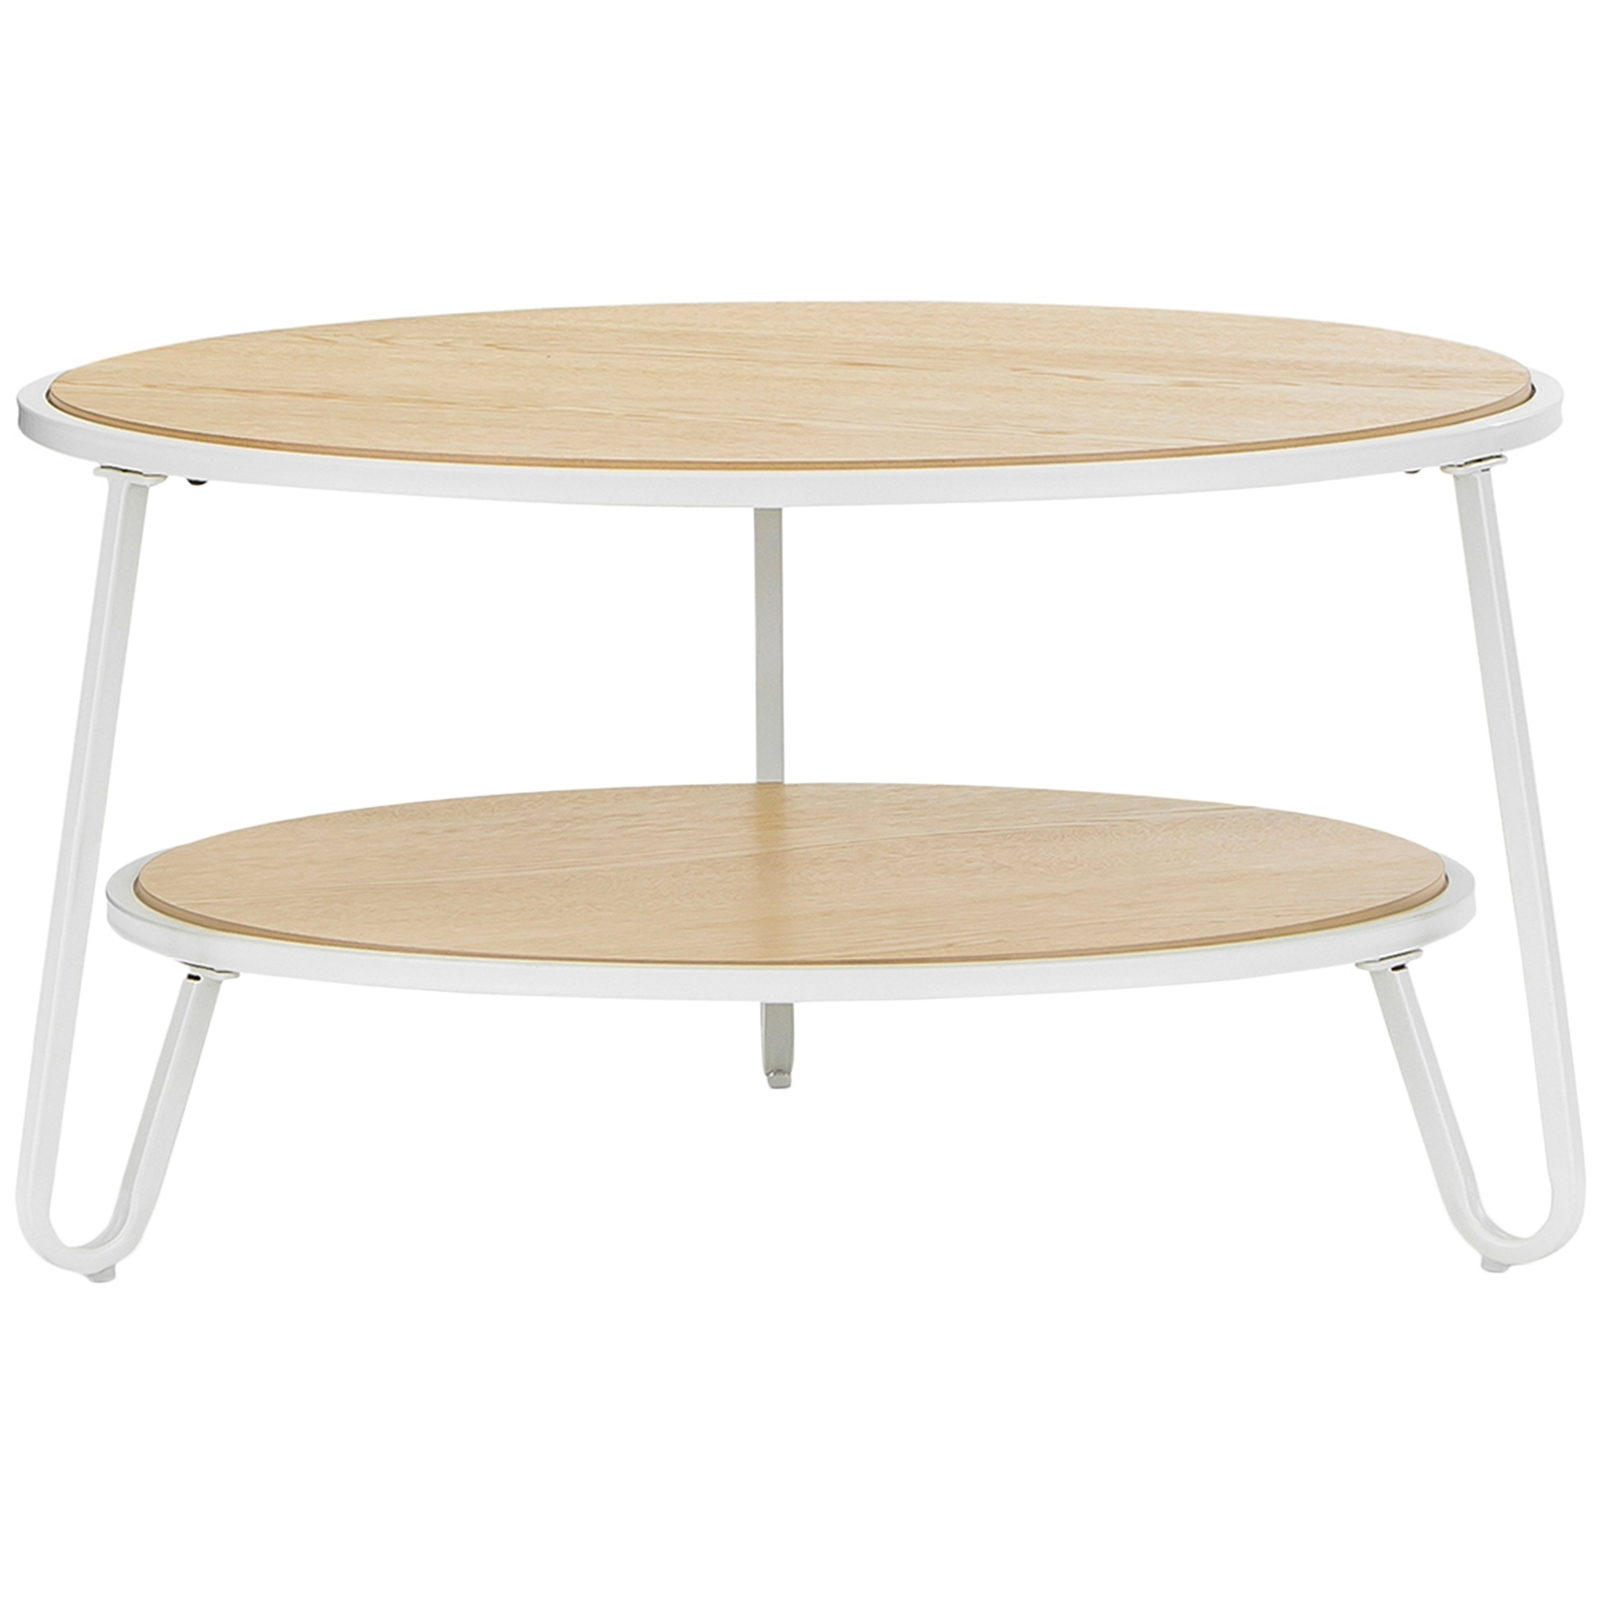 White Macy Round Coffee Table | Temple & Webster In Most Current Macie Round Dining Tables (Photo 14 of 20)